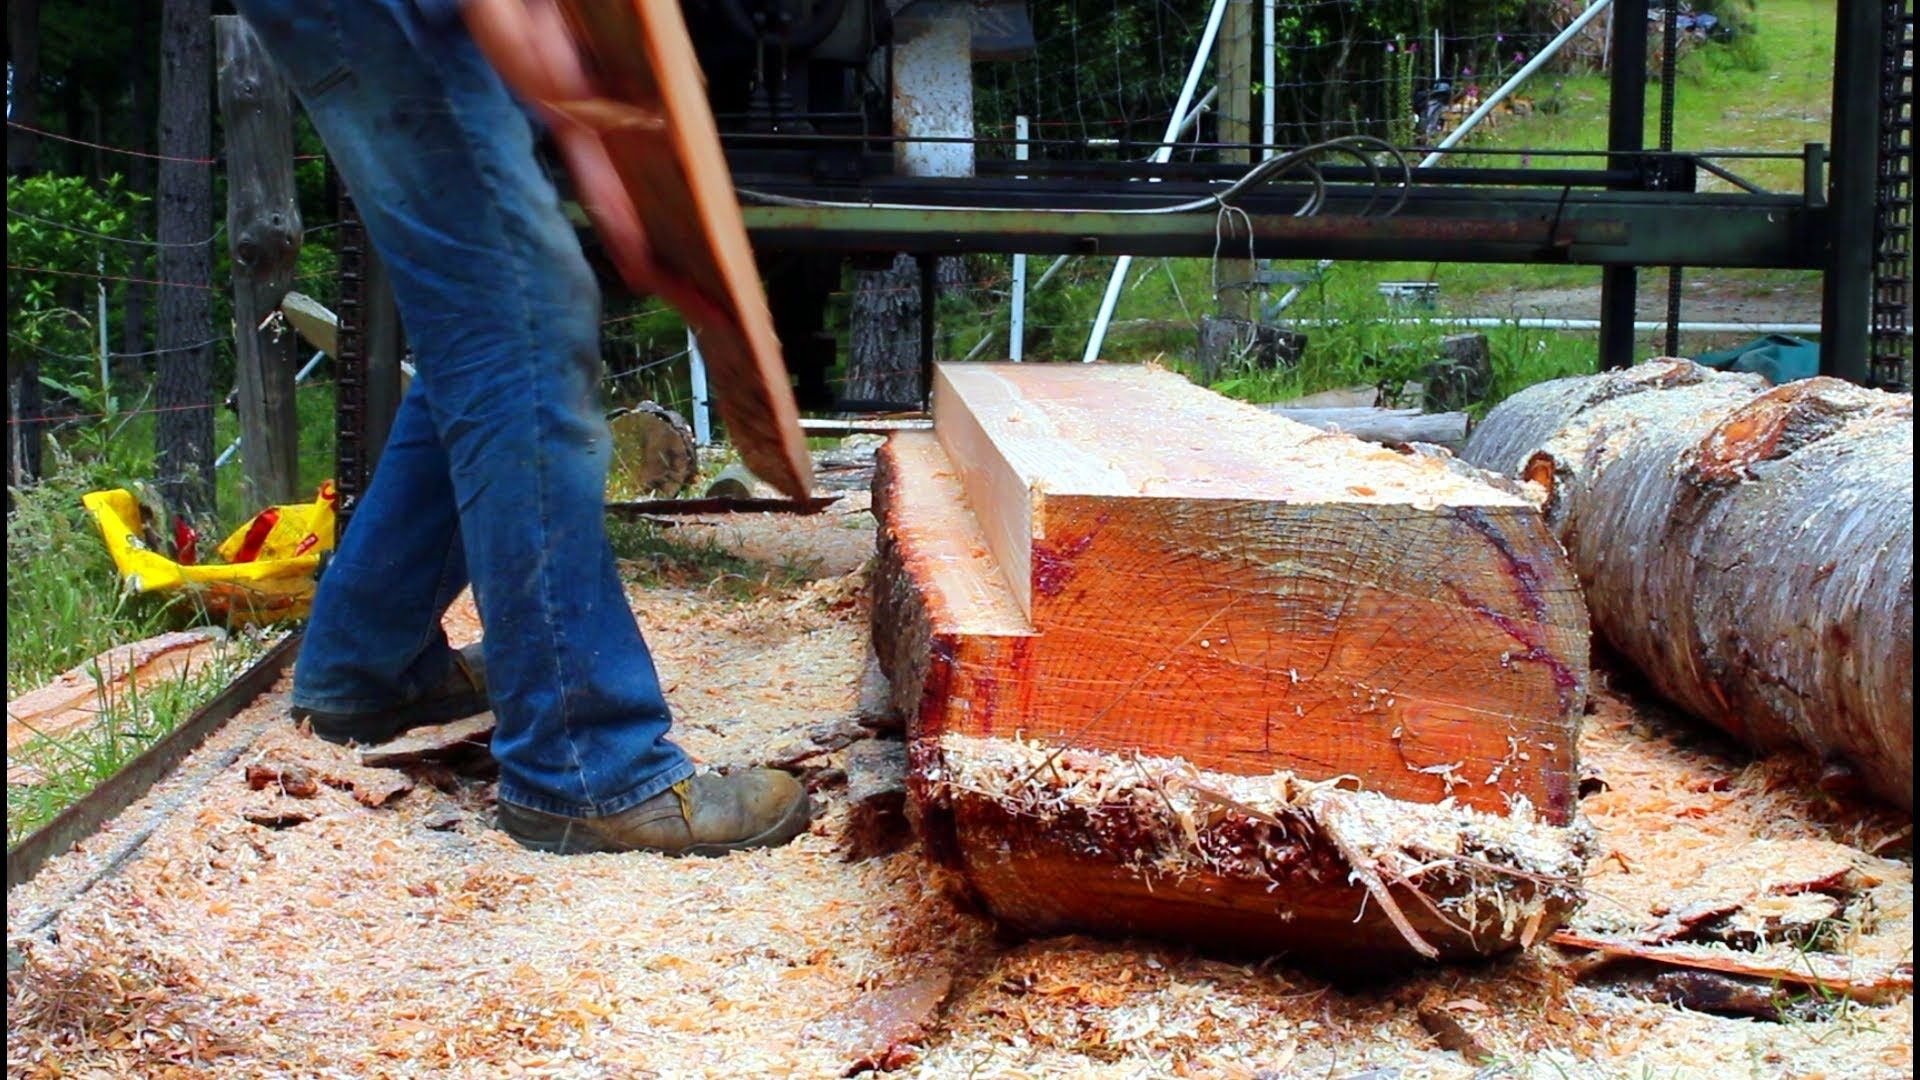 home made twin blade sawmill in action woodworking prelucrarea